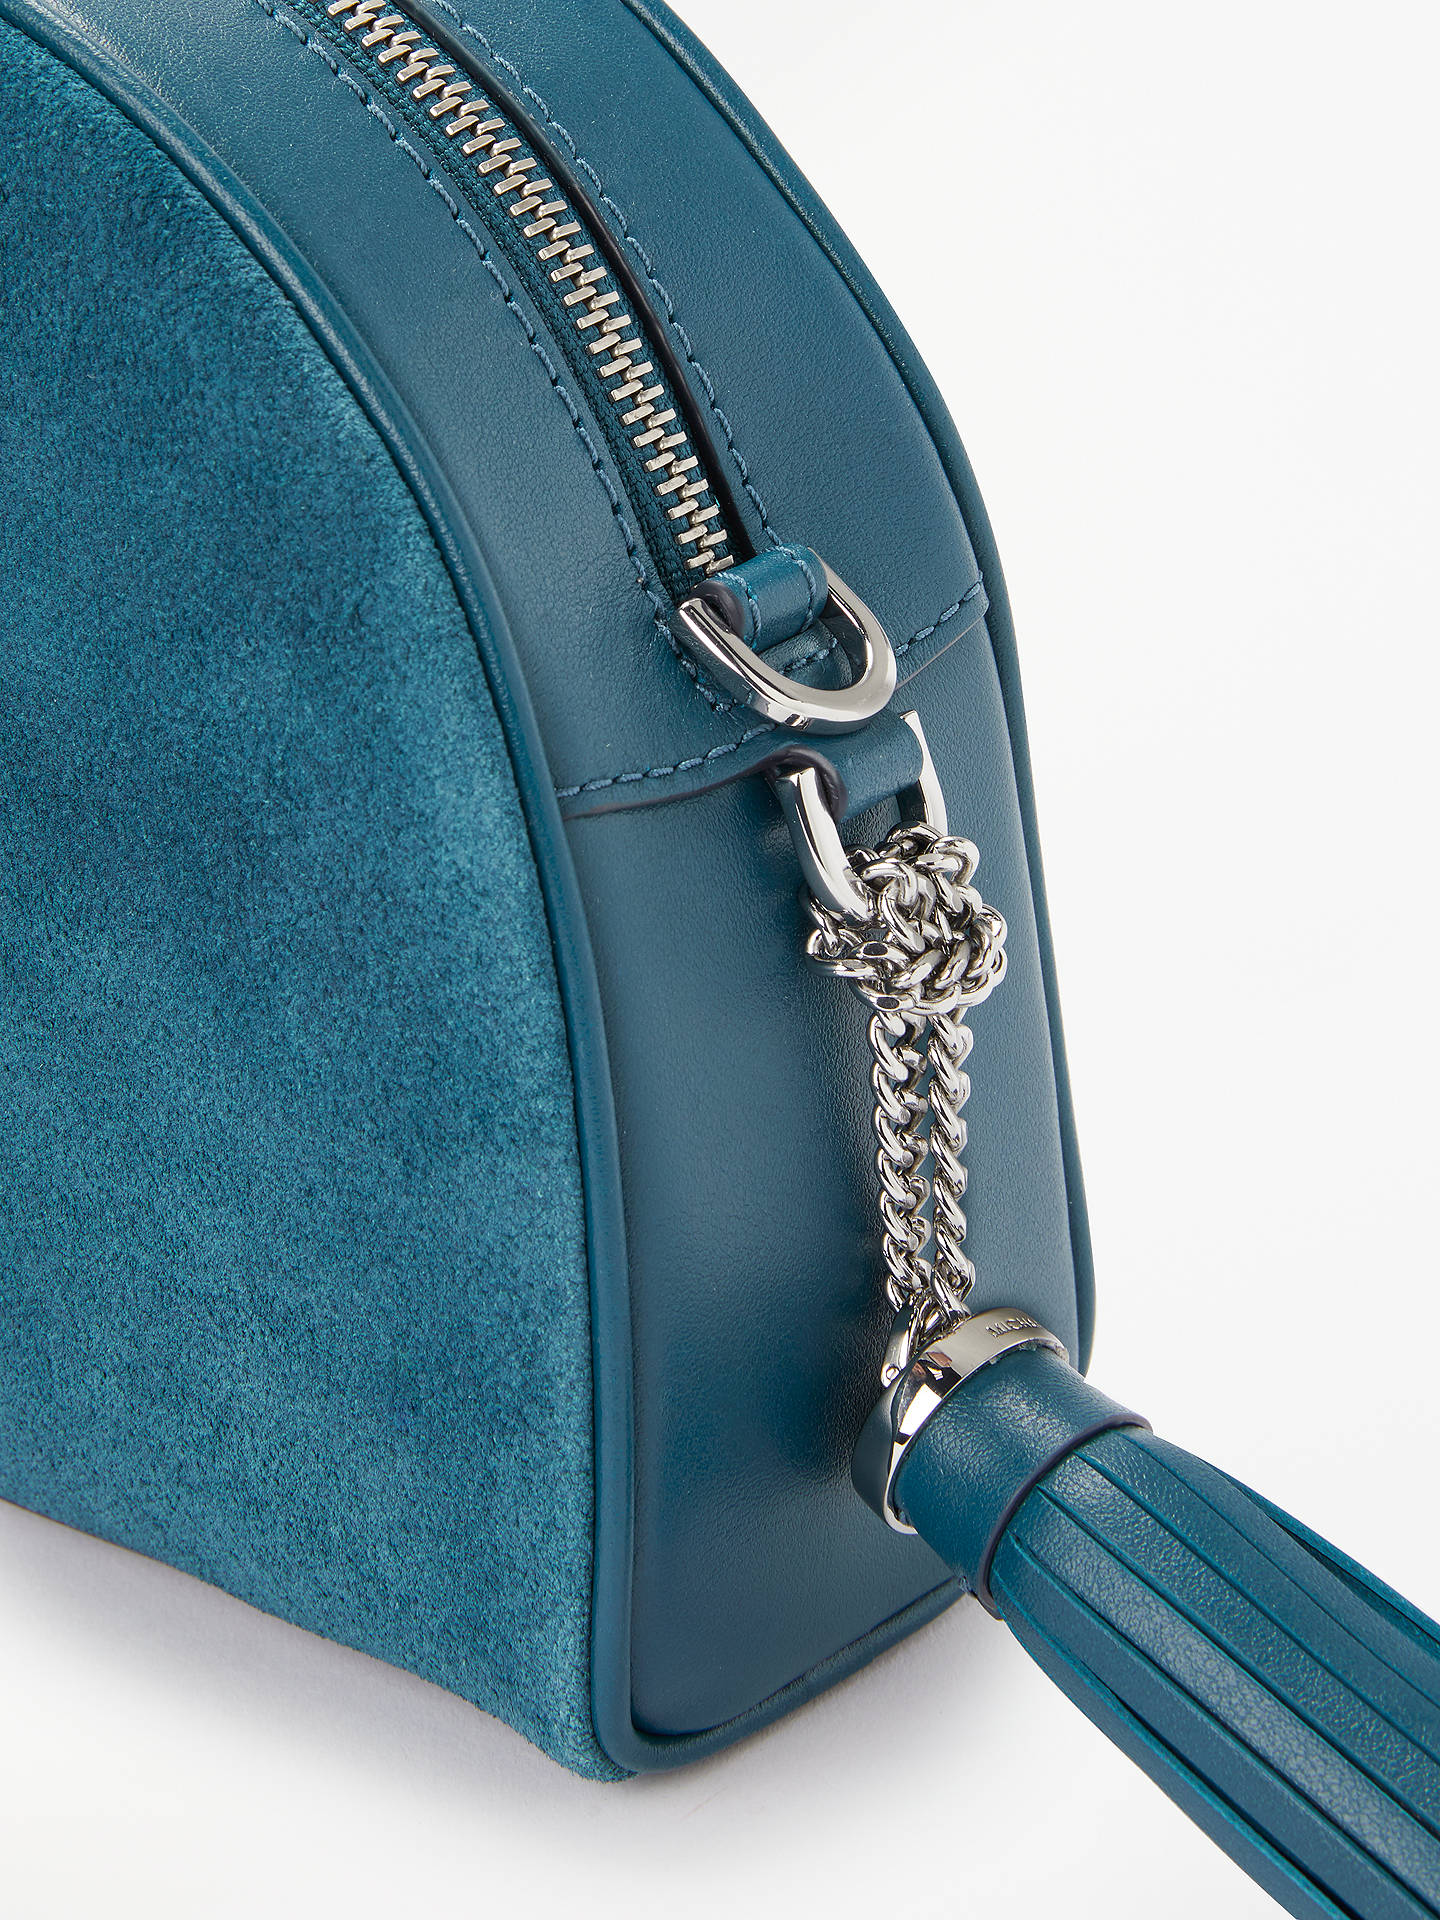 BuyMICHAEL Michael Kors Medium Half Moon Leather Cross Body Bag, Teal Online at johnlewis.com